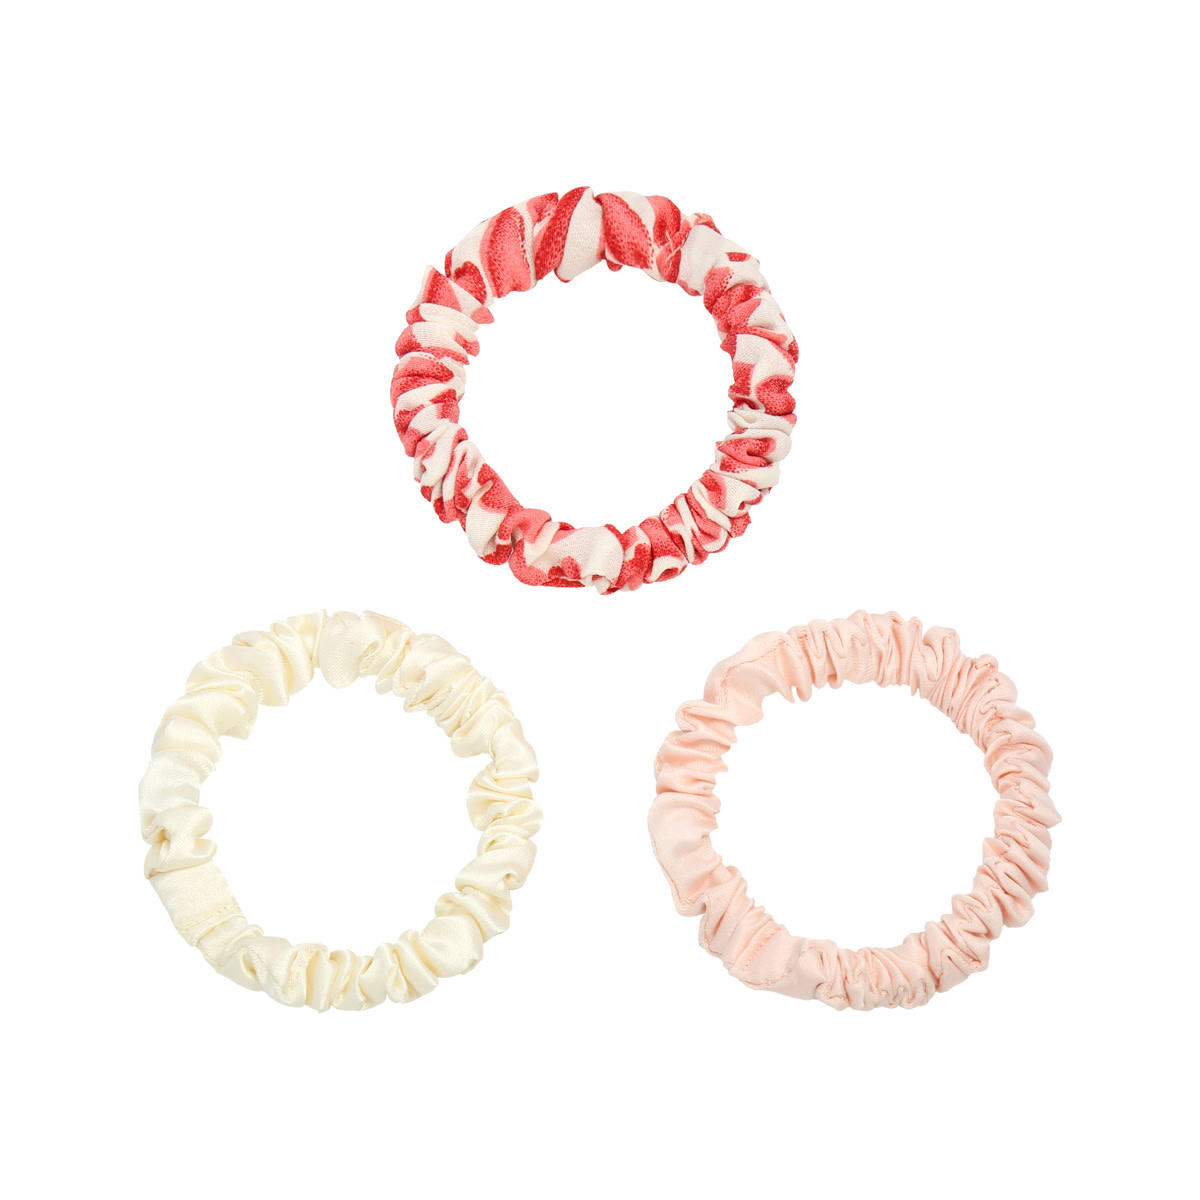 With love Hair tie - Love